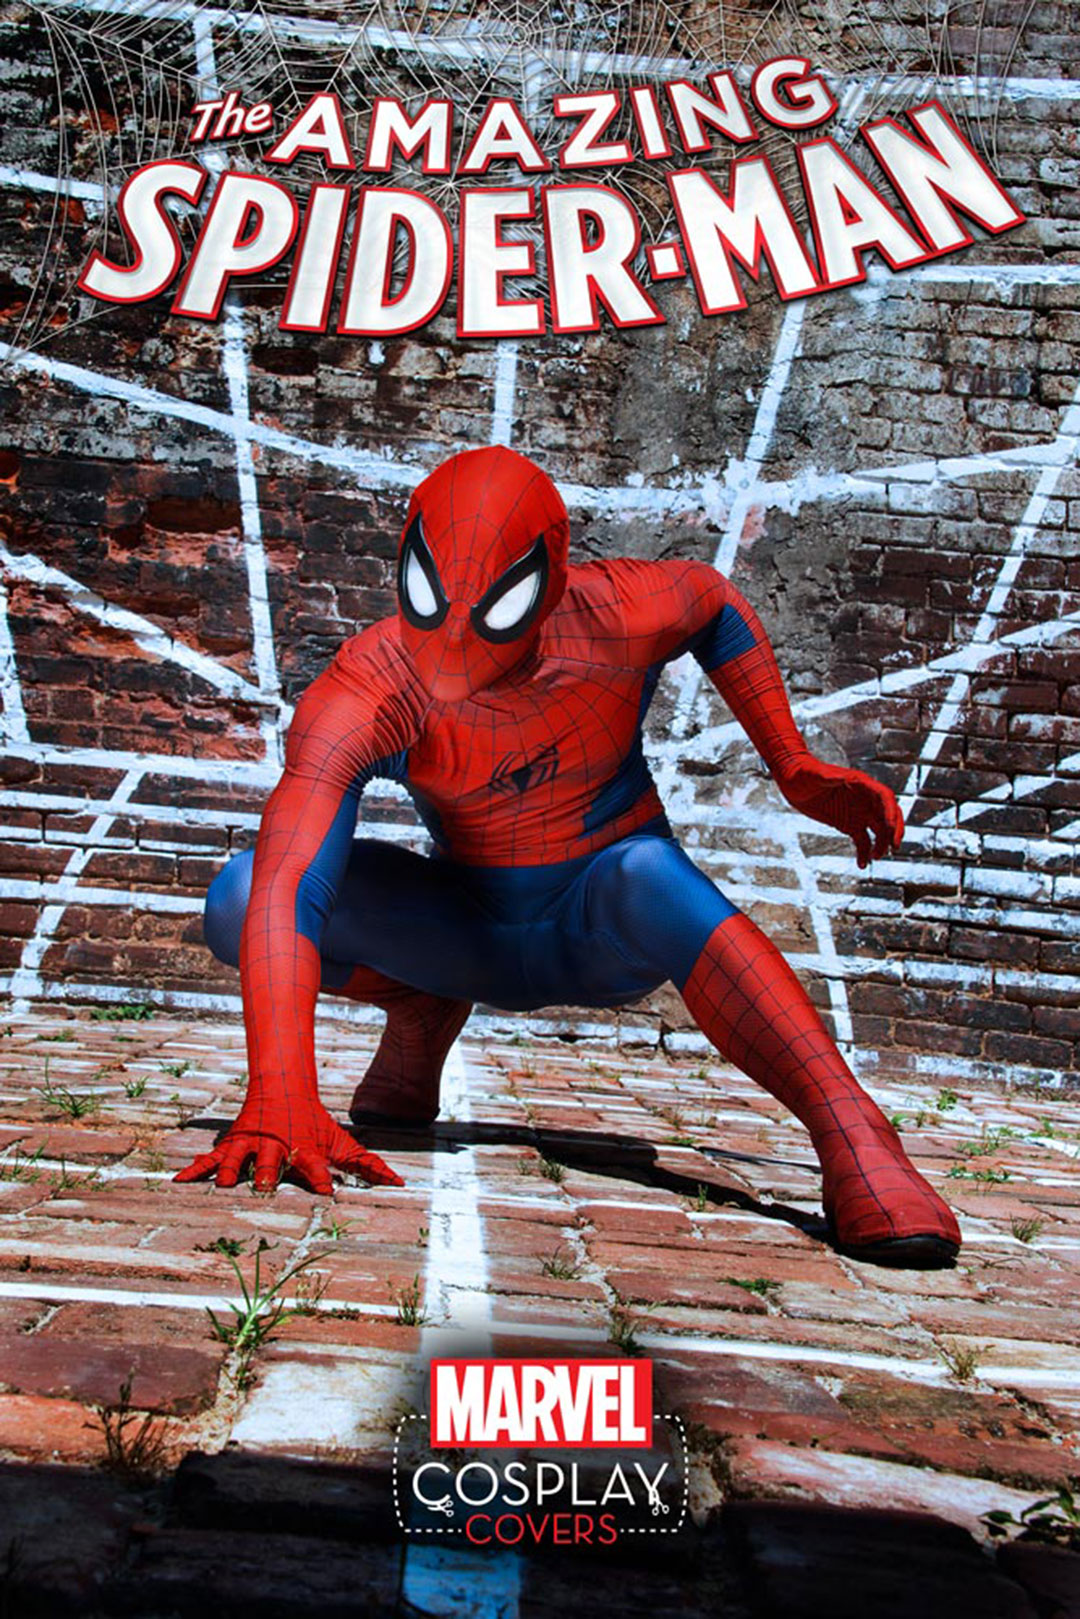 Couverture-Marvel-cosplay (16)